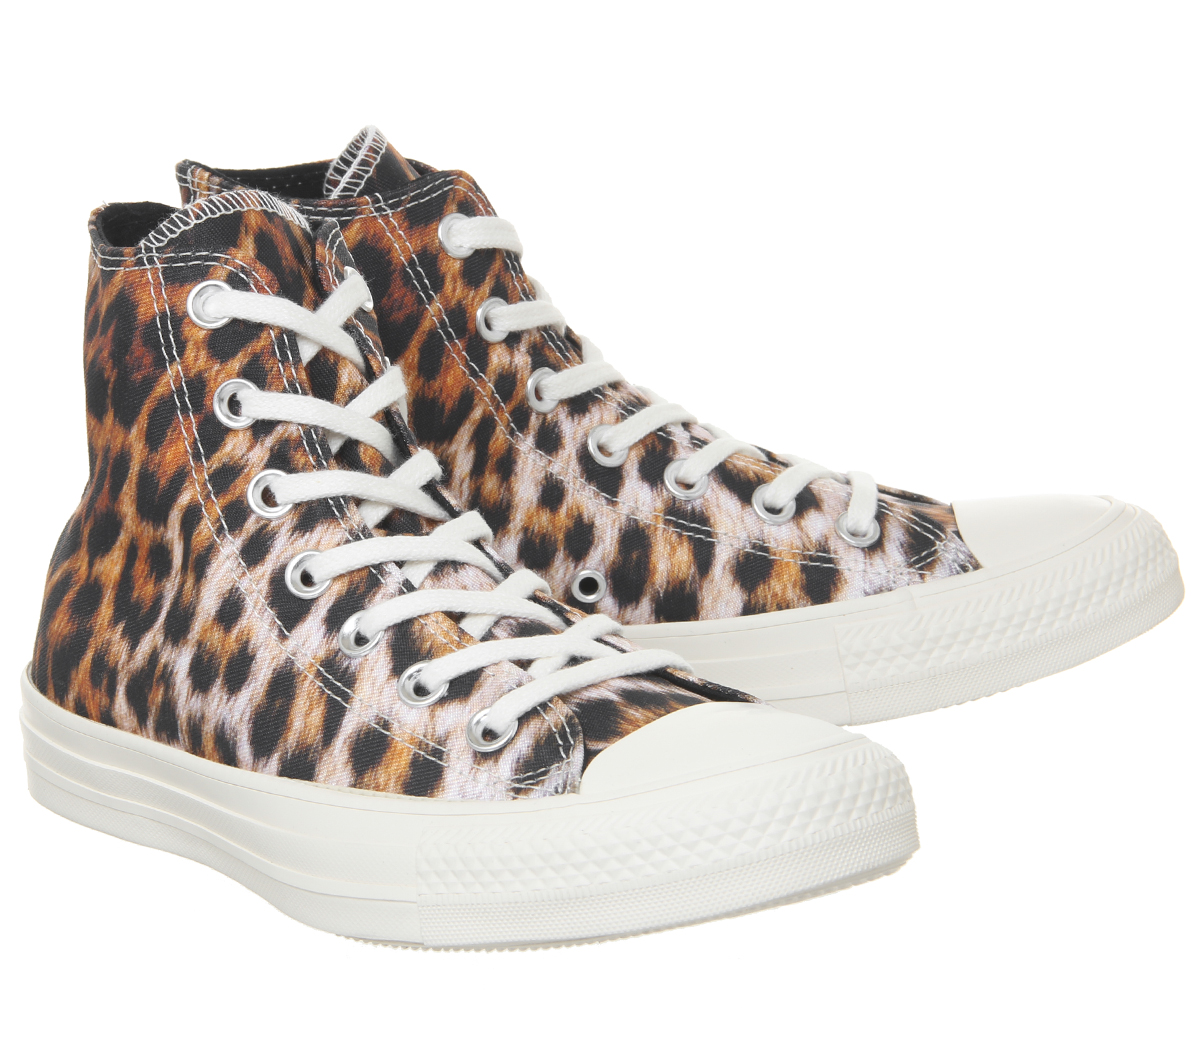 a124405a9d Womens Converse Converse All Star Hi Trainers Black Egret Leopard ...